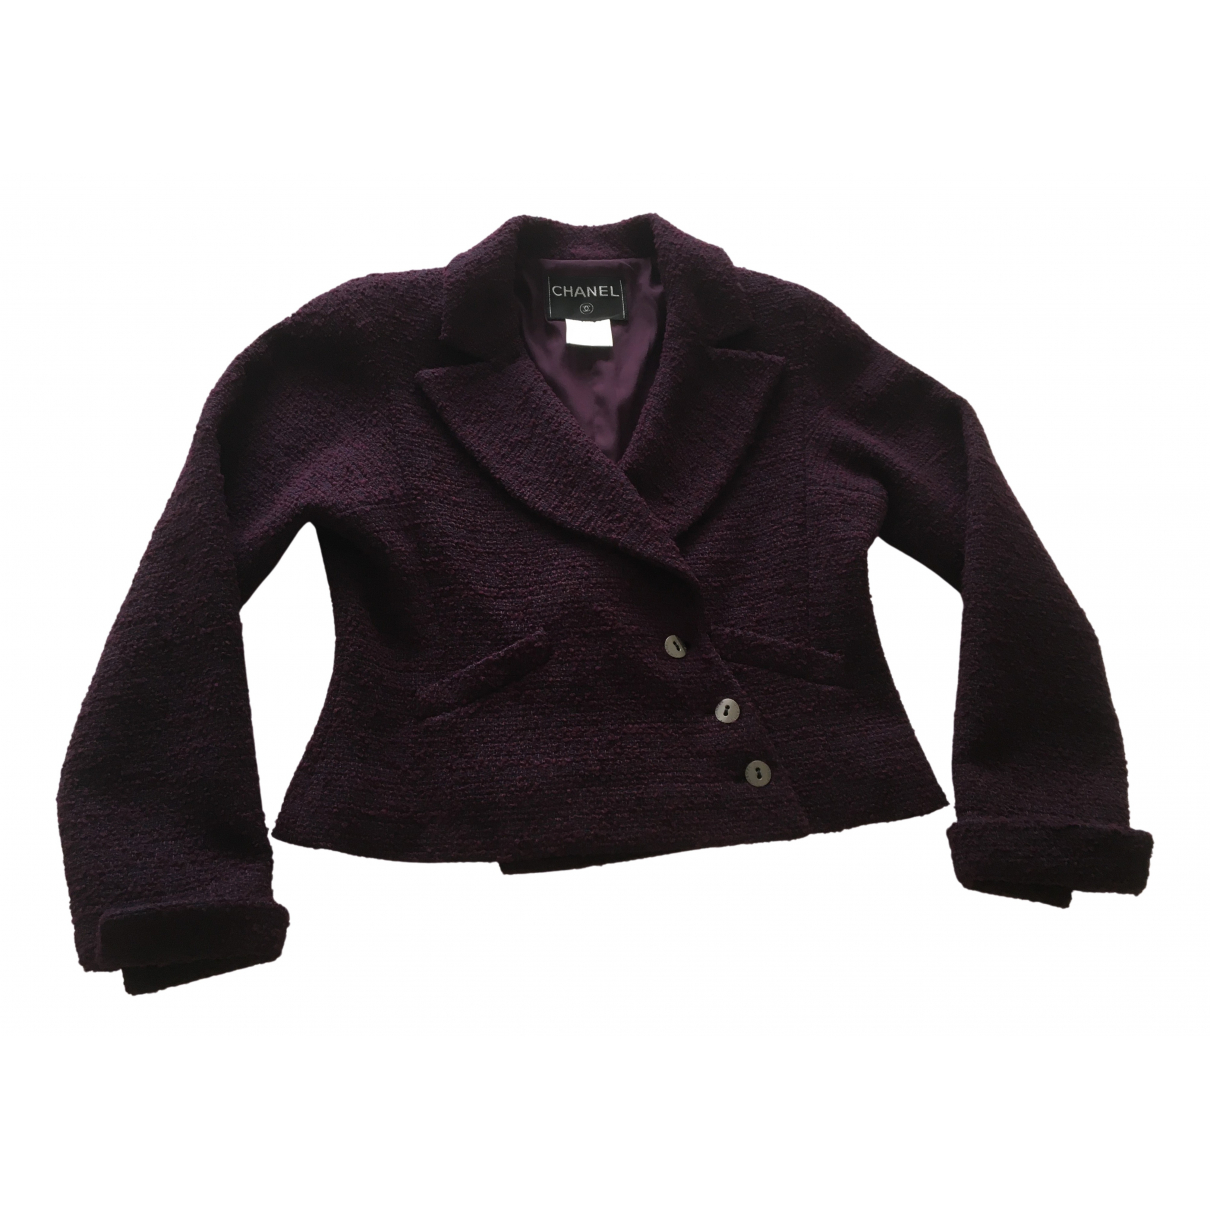 Chanel \N Burgundy Wool jacket for Women 42 FR